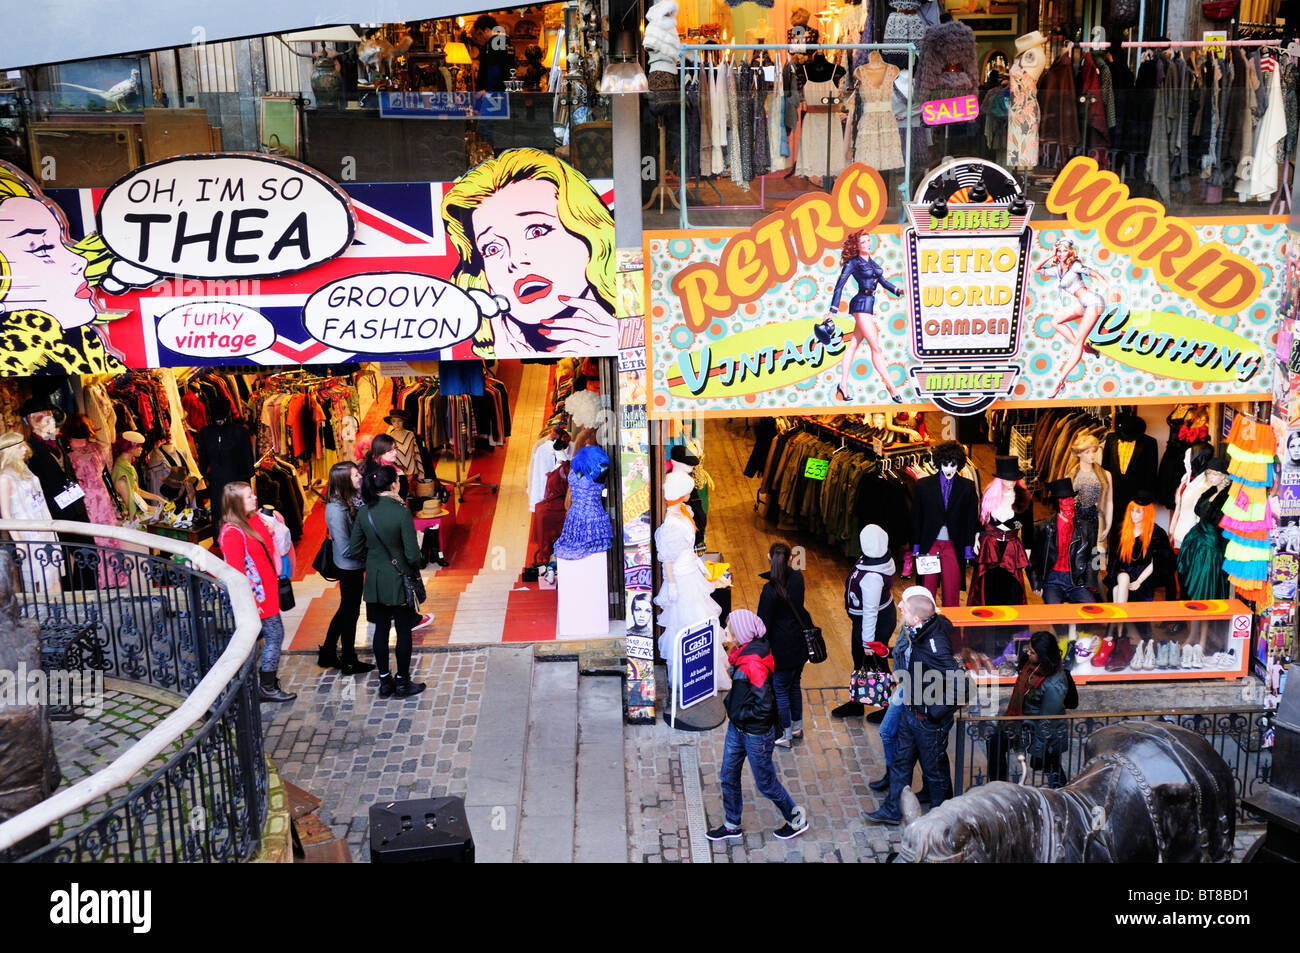 Vintage Retro Clothing Shops at The Stables Market, Camden Town, London, England, Uk - Stock Image